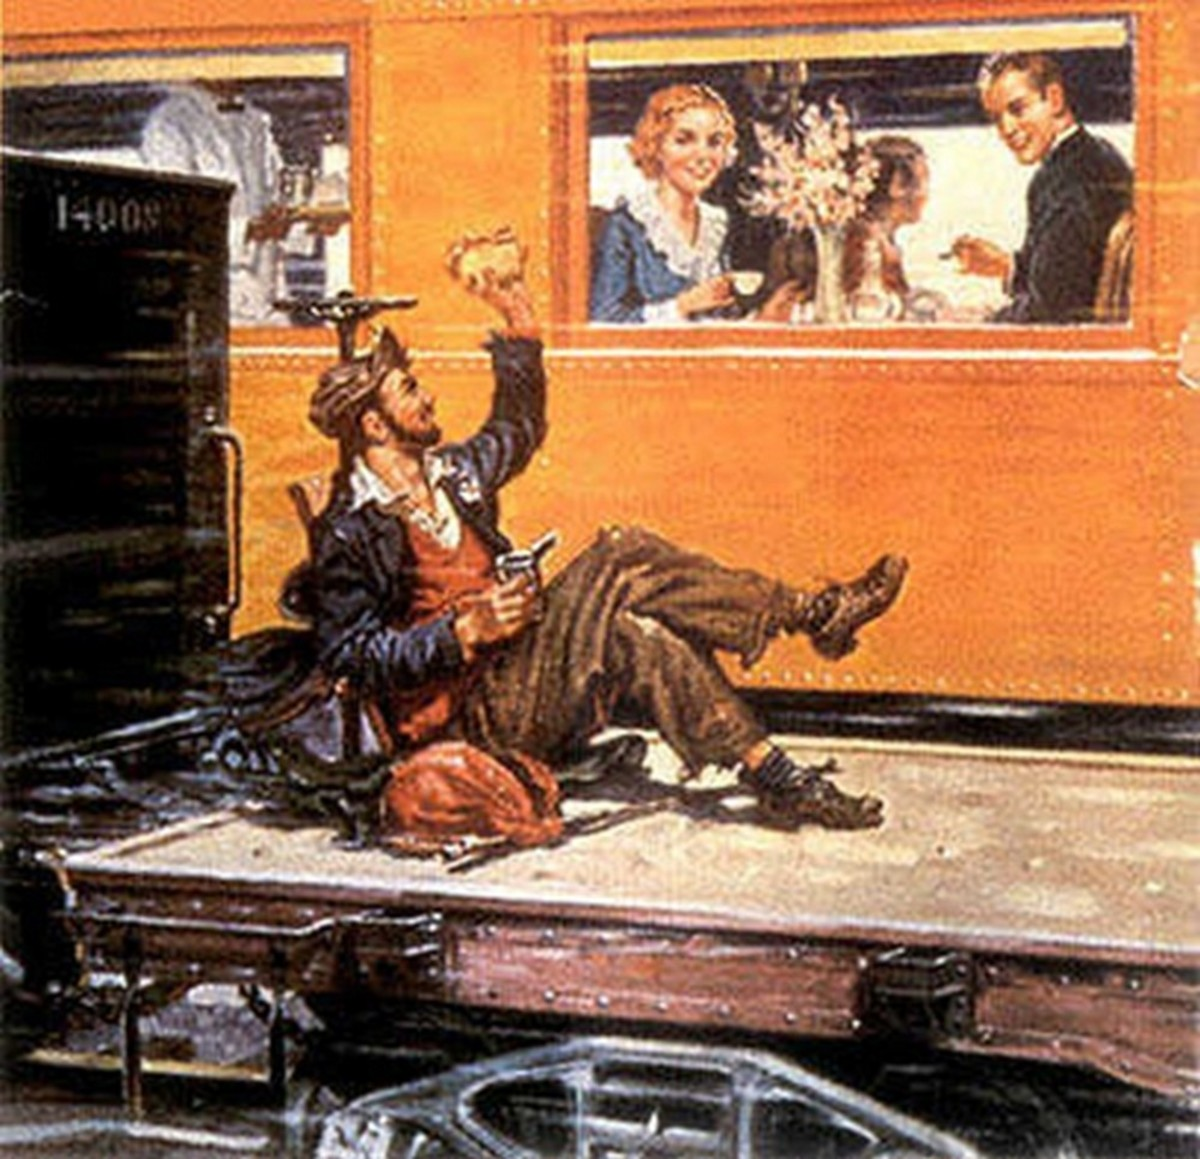 Do the people in the dining car think this free rider is a problem?